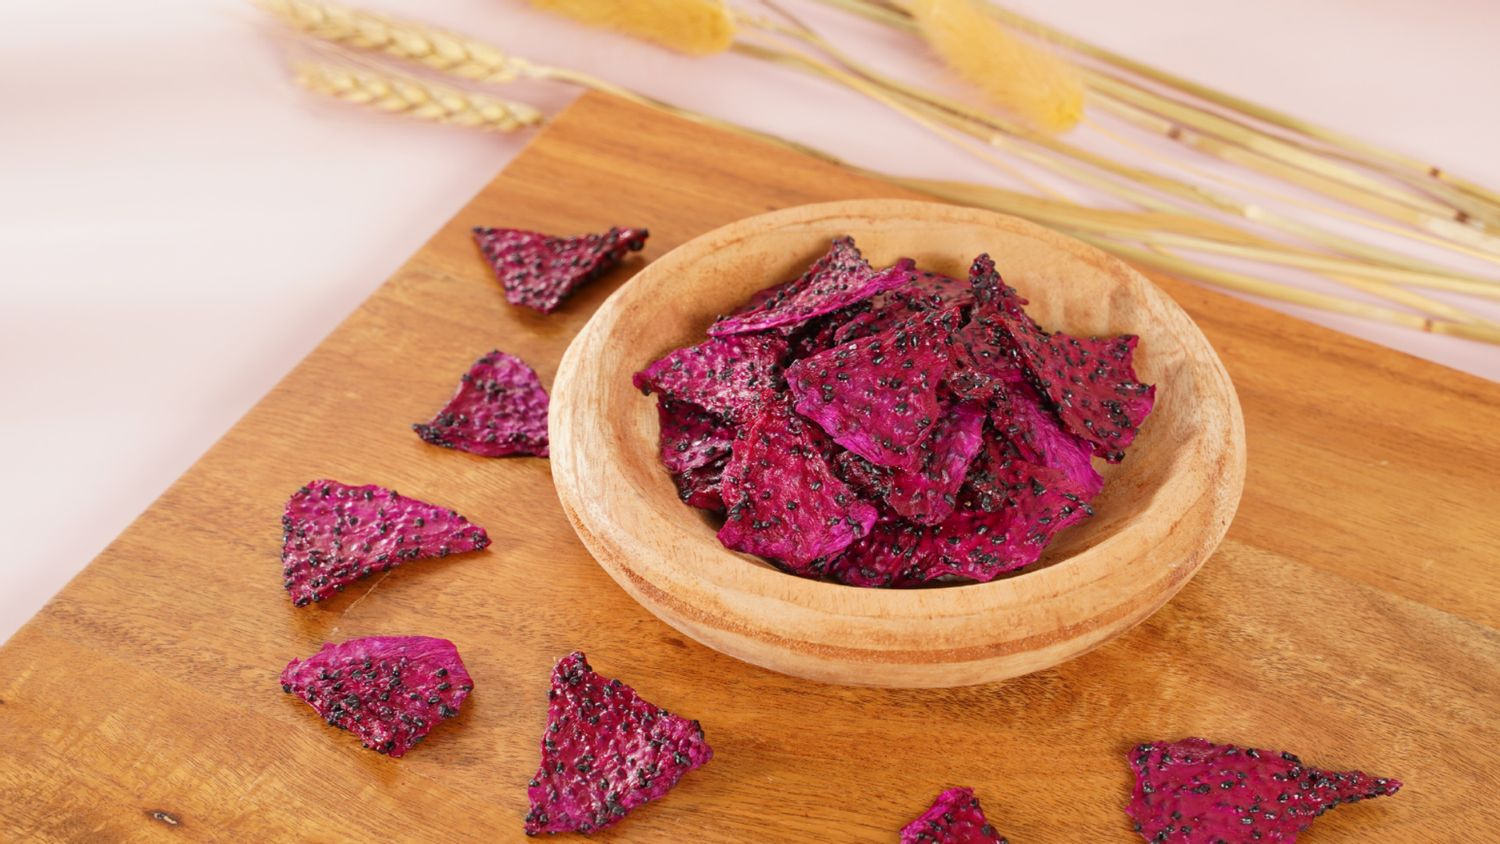 Fruit First: Dried Fruit 100% Made in Malaysia   Dried Fruit Freshly Dehydrated in Malaysia